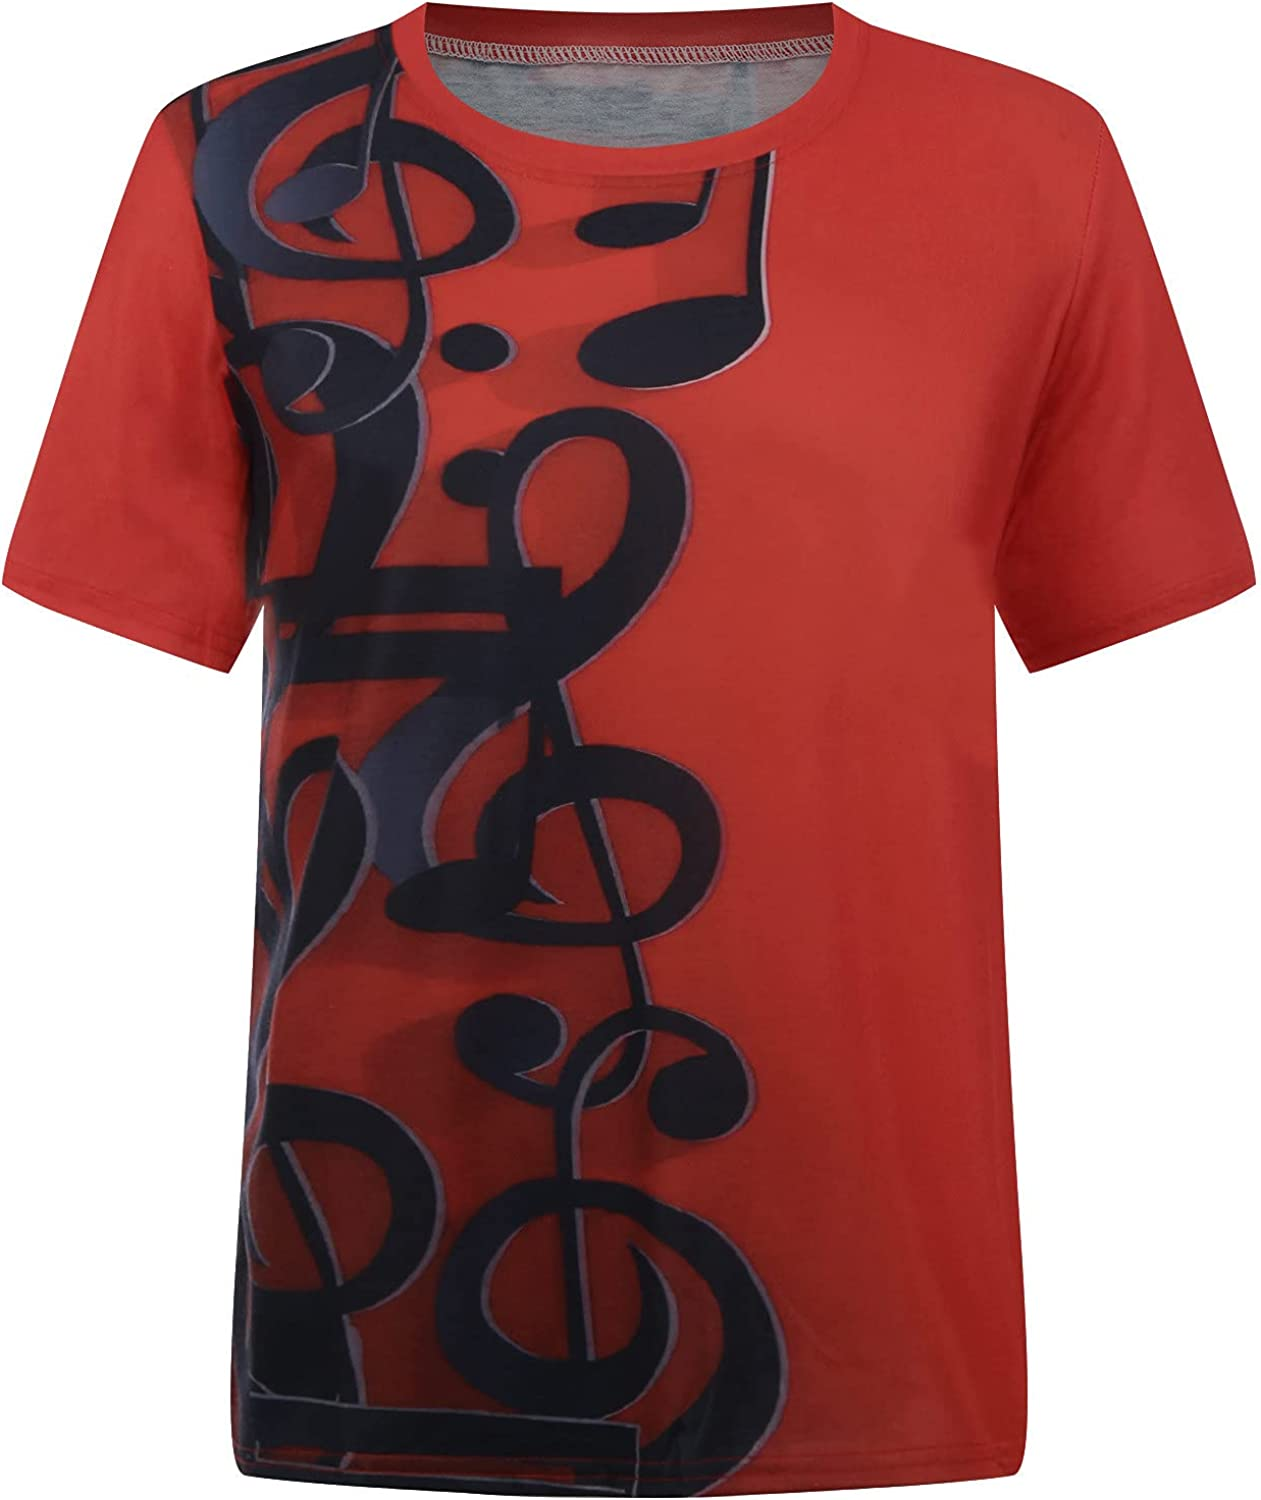 Mens Graphic Tee, Summer Plus Size Casual 3D Graphic Novelty Printed Crew Neck Short Sleeve T-Shirts Tops